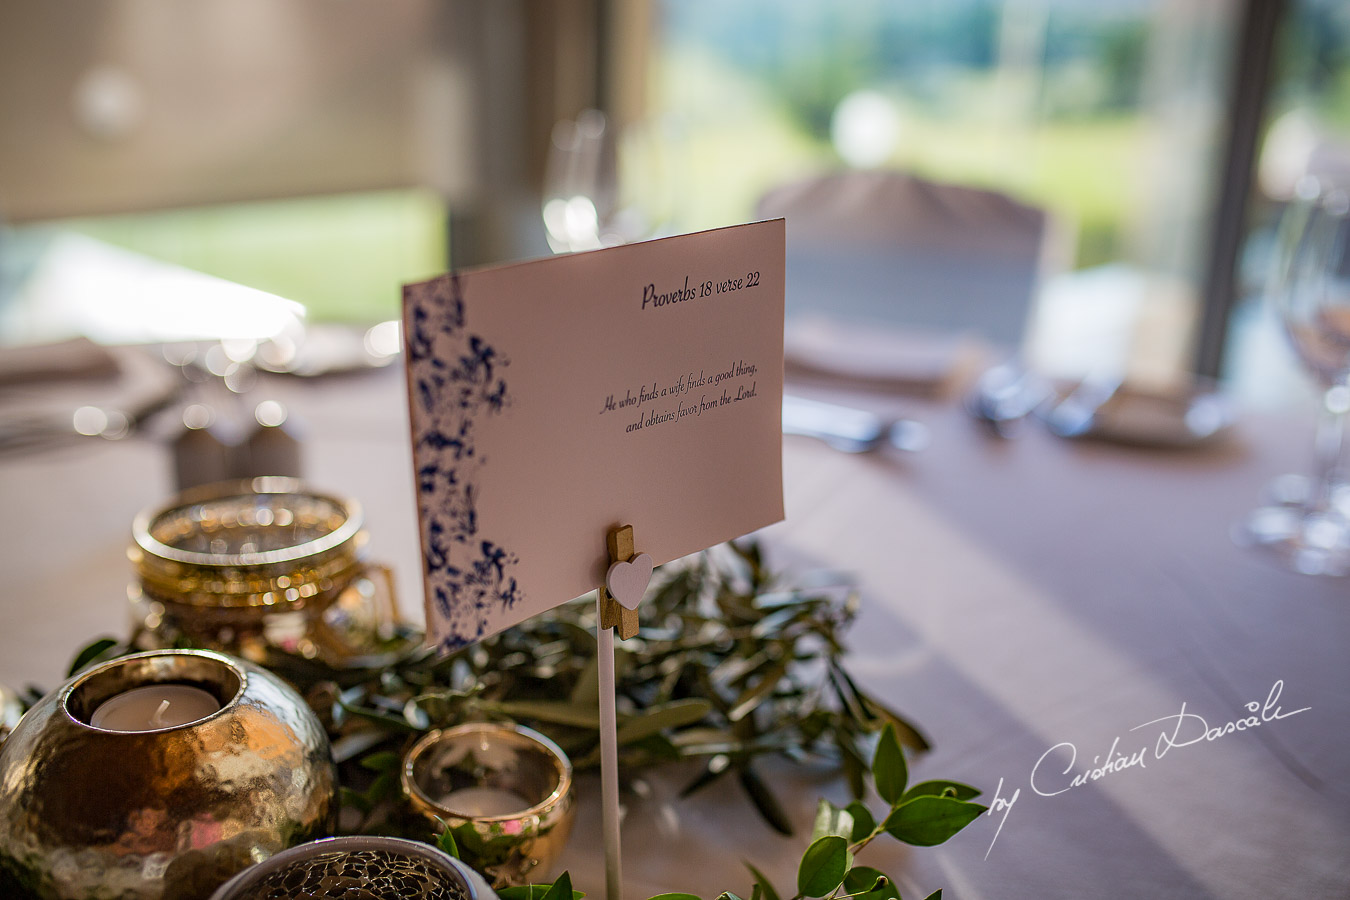 Wedding venue details captured at a wedding at Minthis Hills in Cyprus, by Cristian Dascalu.